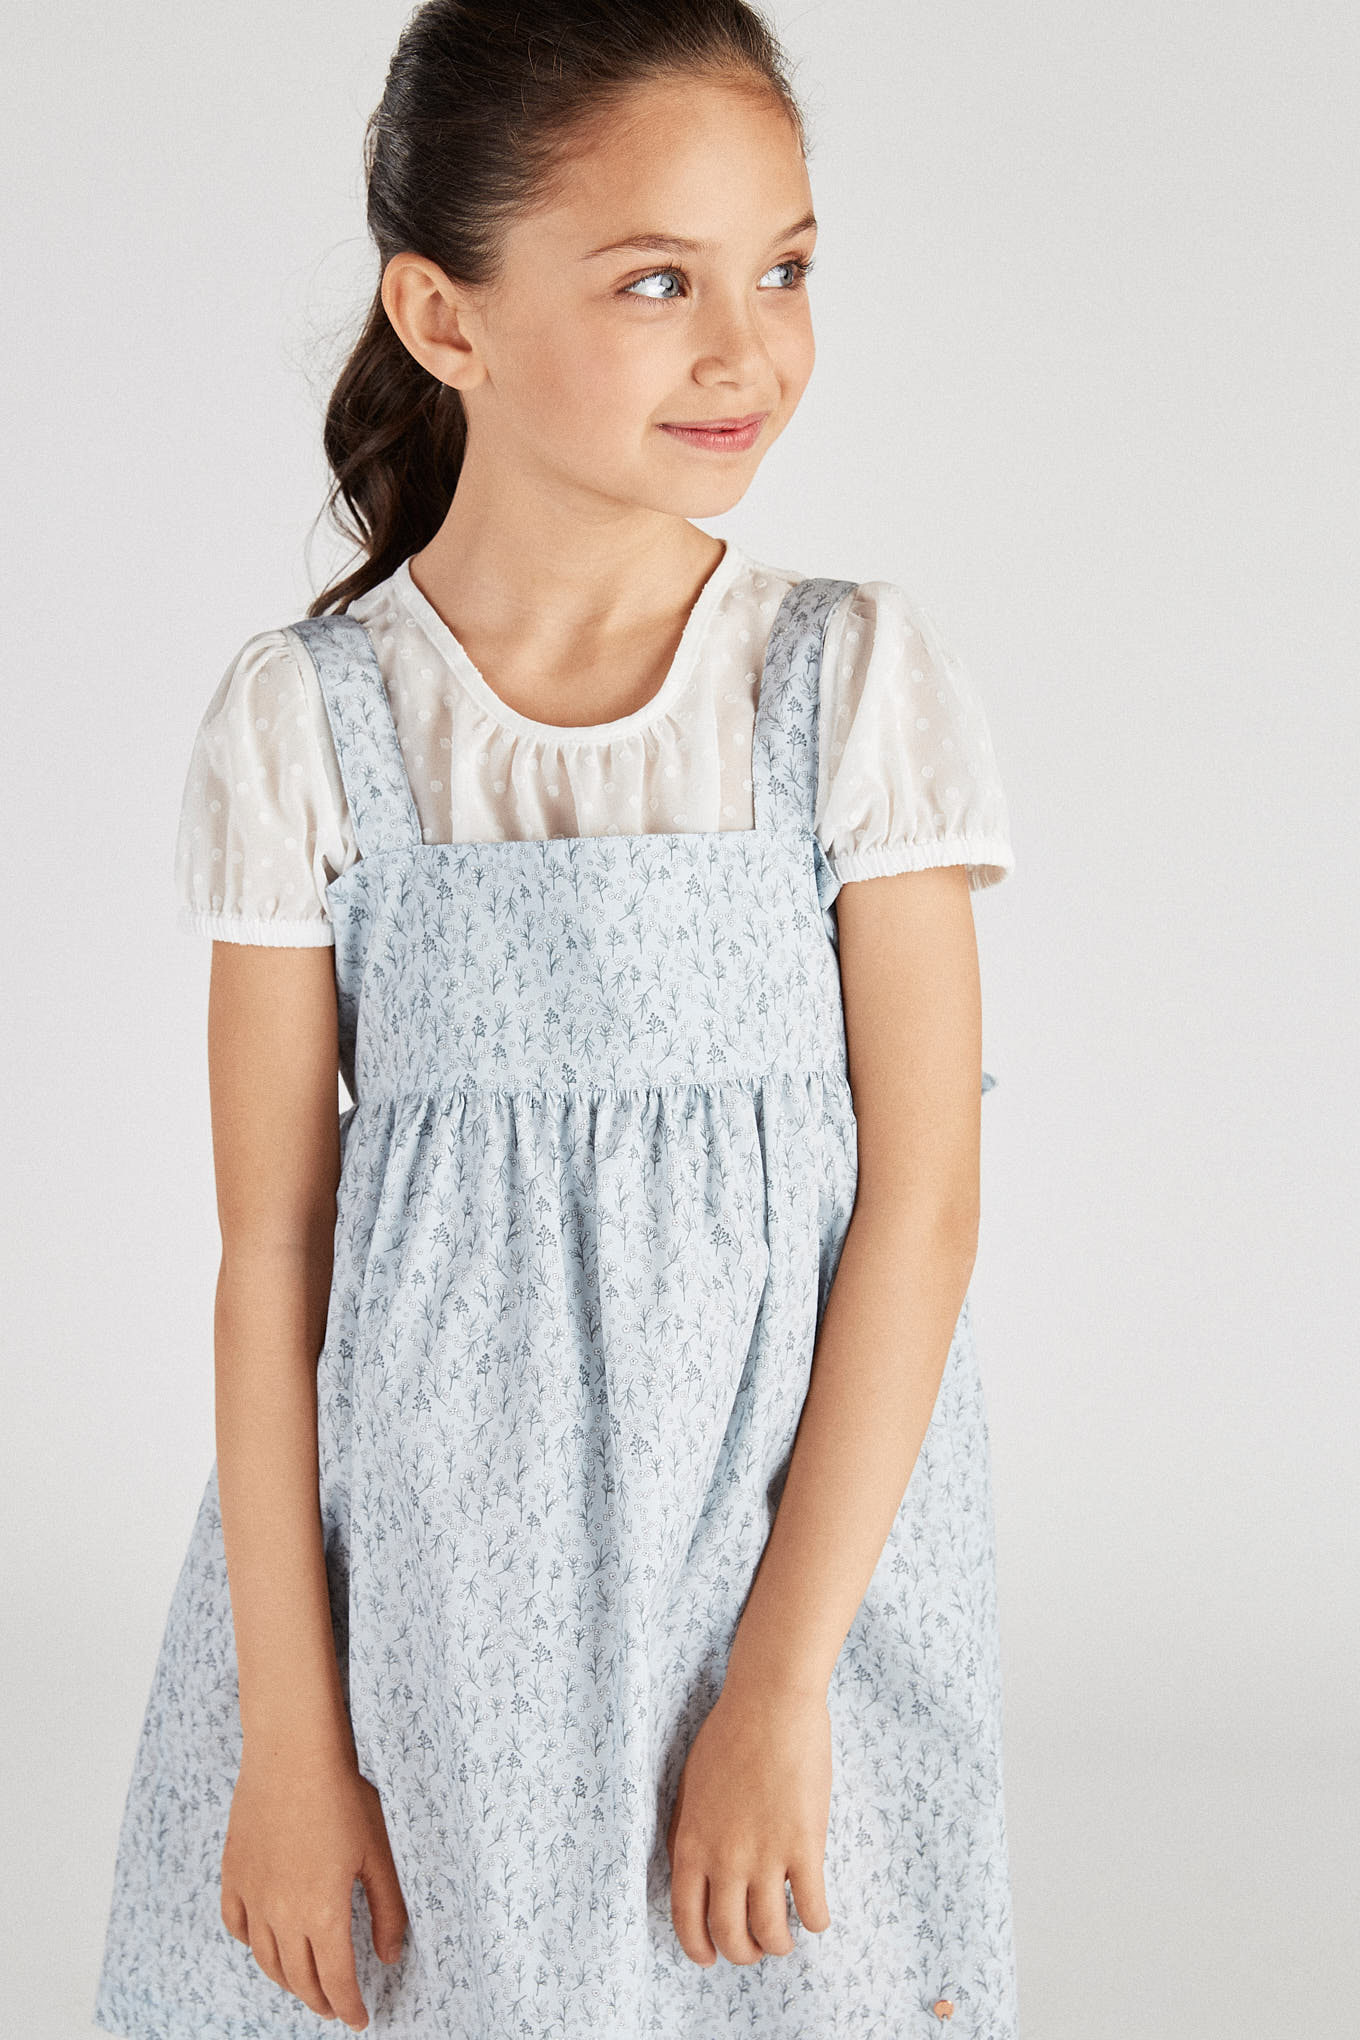 Dress Light Blue Fantasy Girl